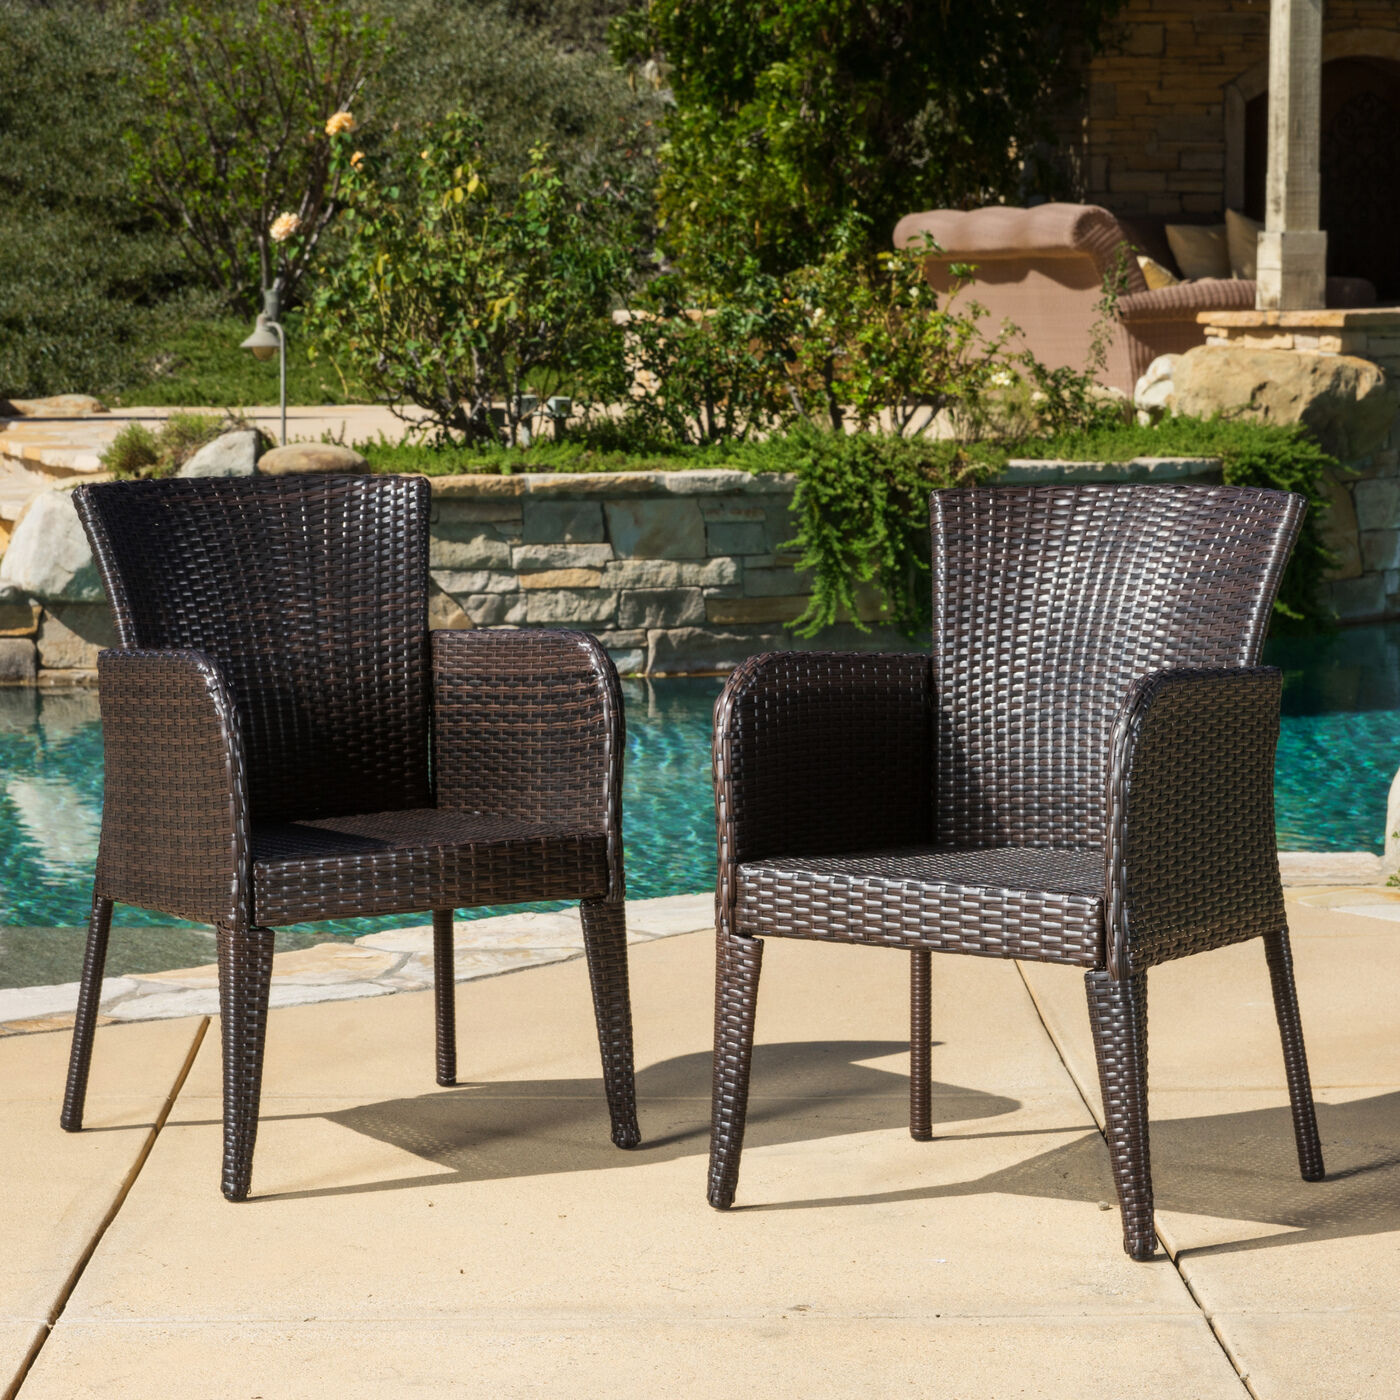 Outdoor patio set modern rattan bistro contemporary wicker for Outdoor furniture wicker